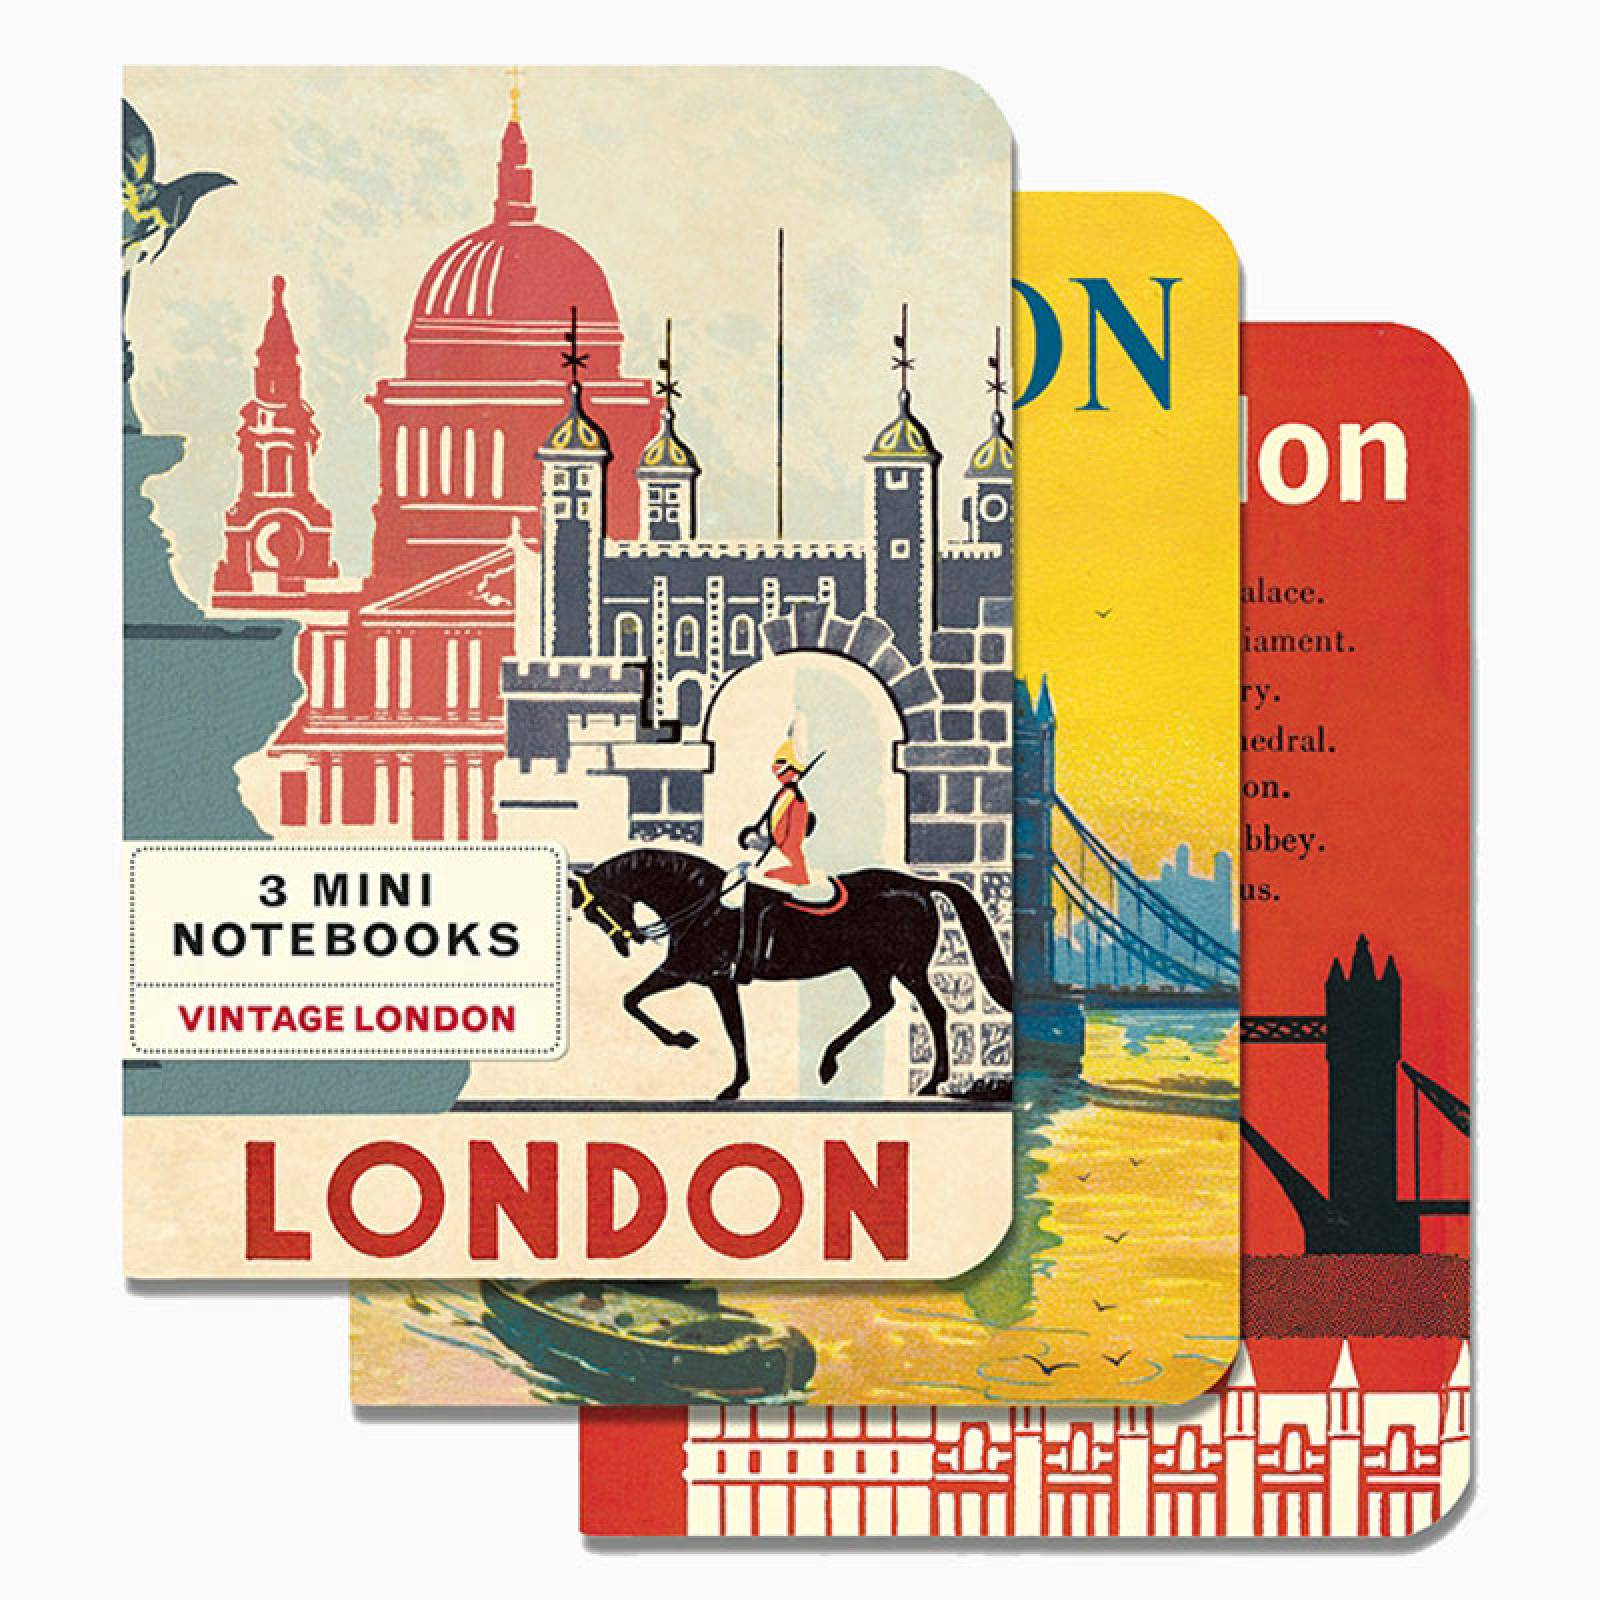 Set Of 3 Mini Notebooks - Vintage London thumbnails